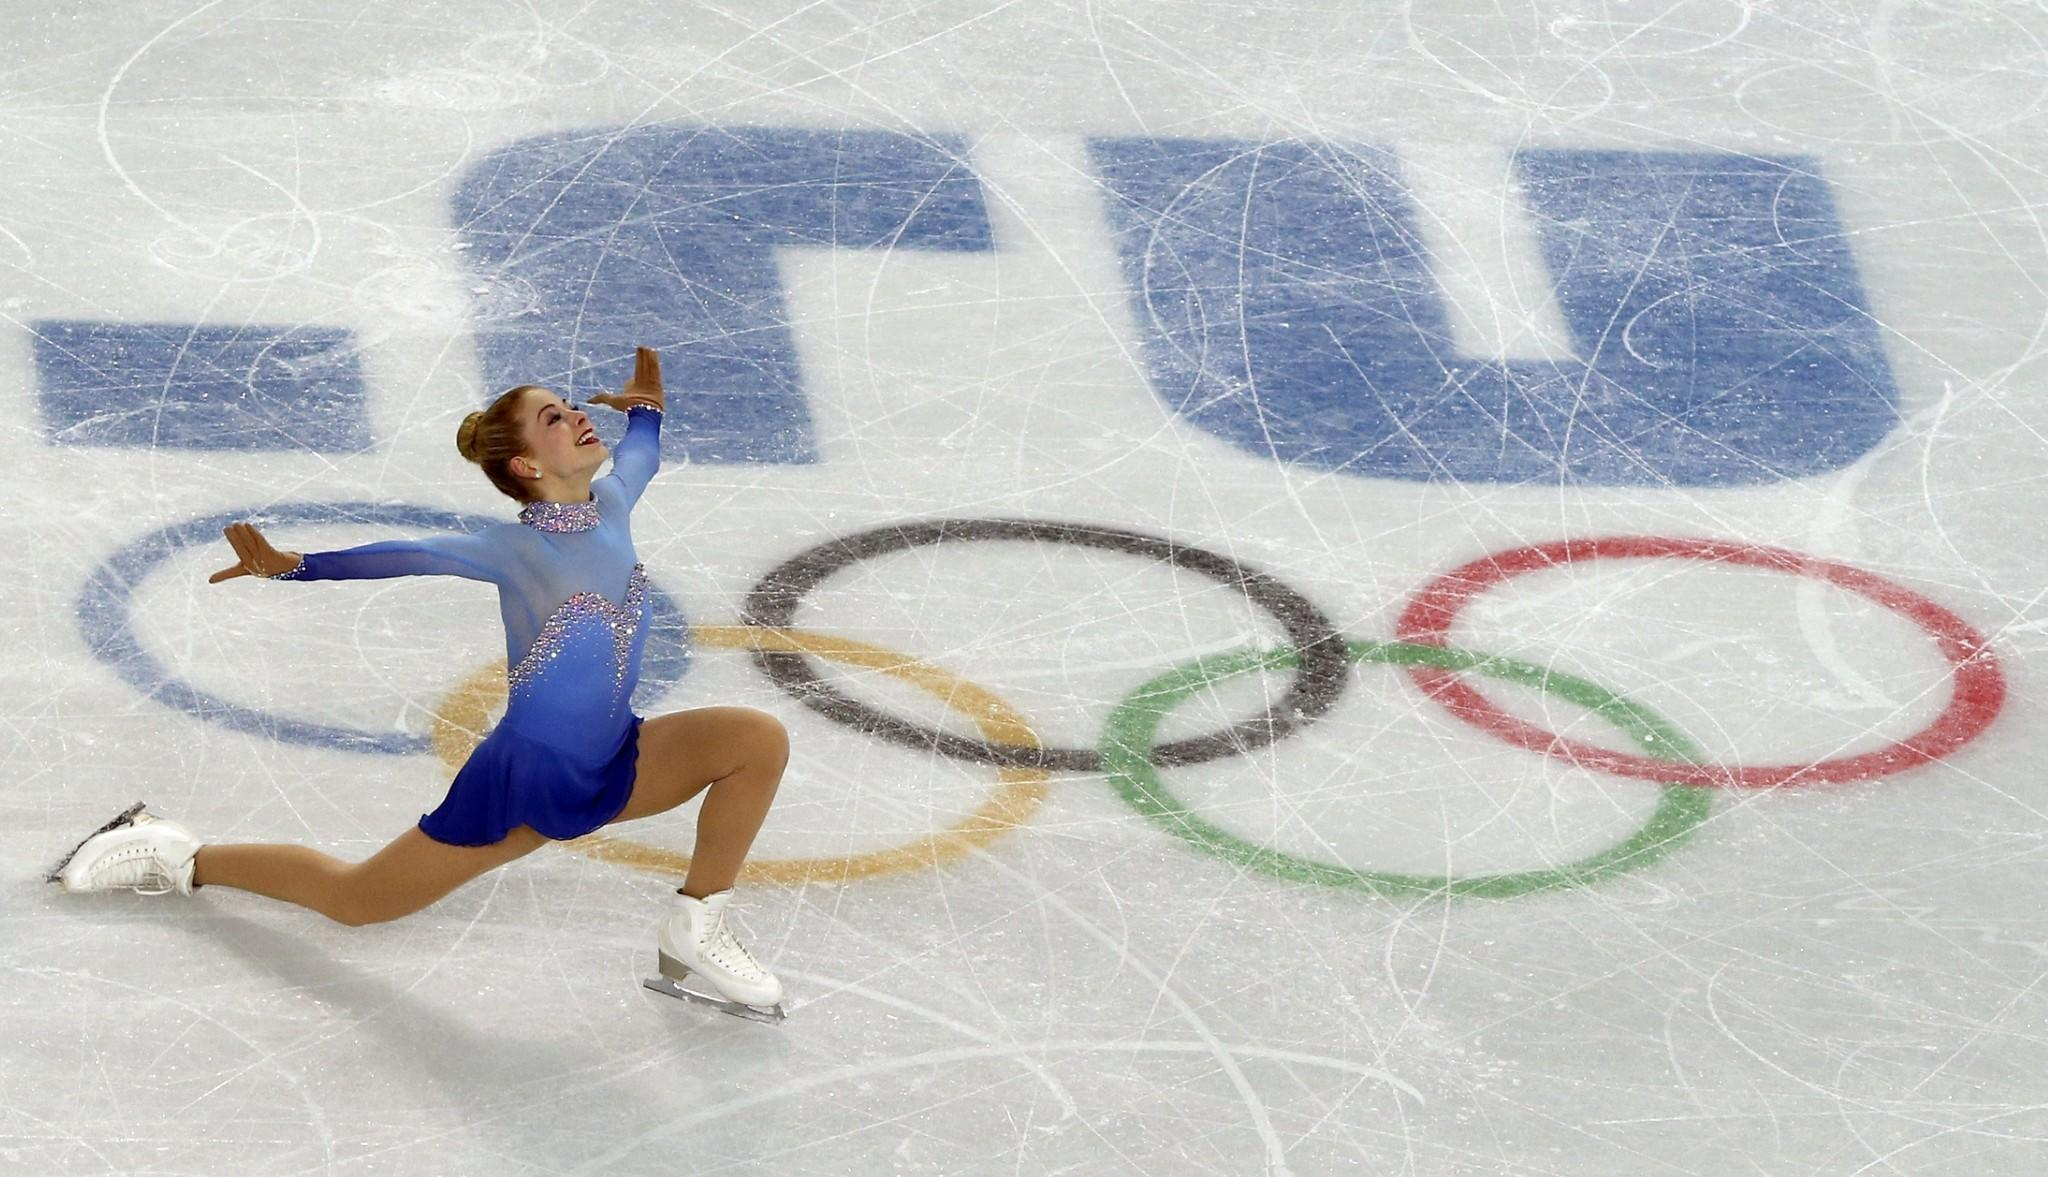 US Gracie Gold performs in the Women's Figure Skating Free Program at the Iceberg Skating Palace during the Sochi Winter Olympics on February 20, 2014.